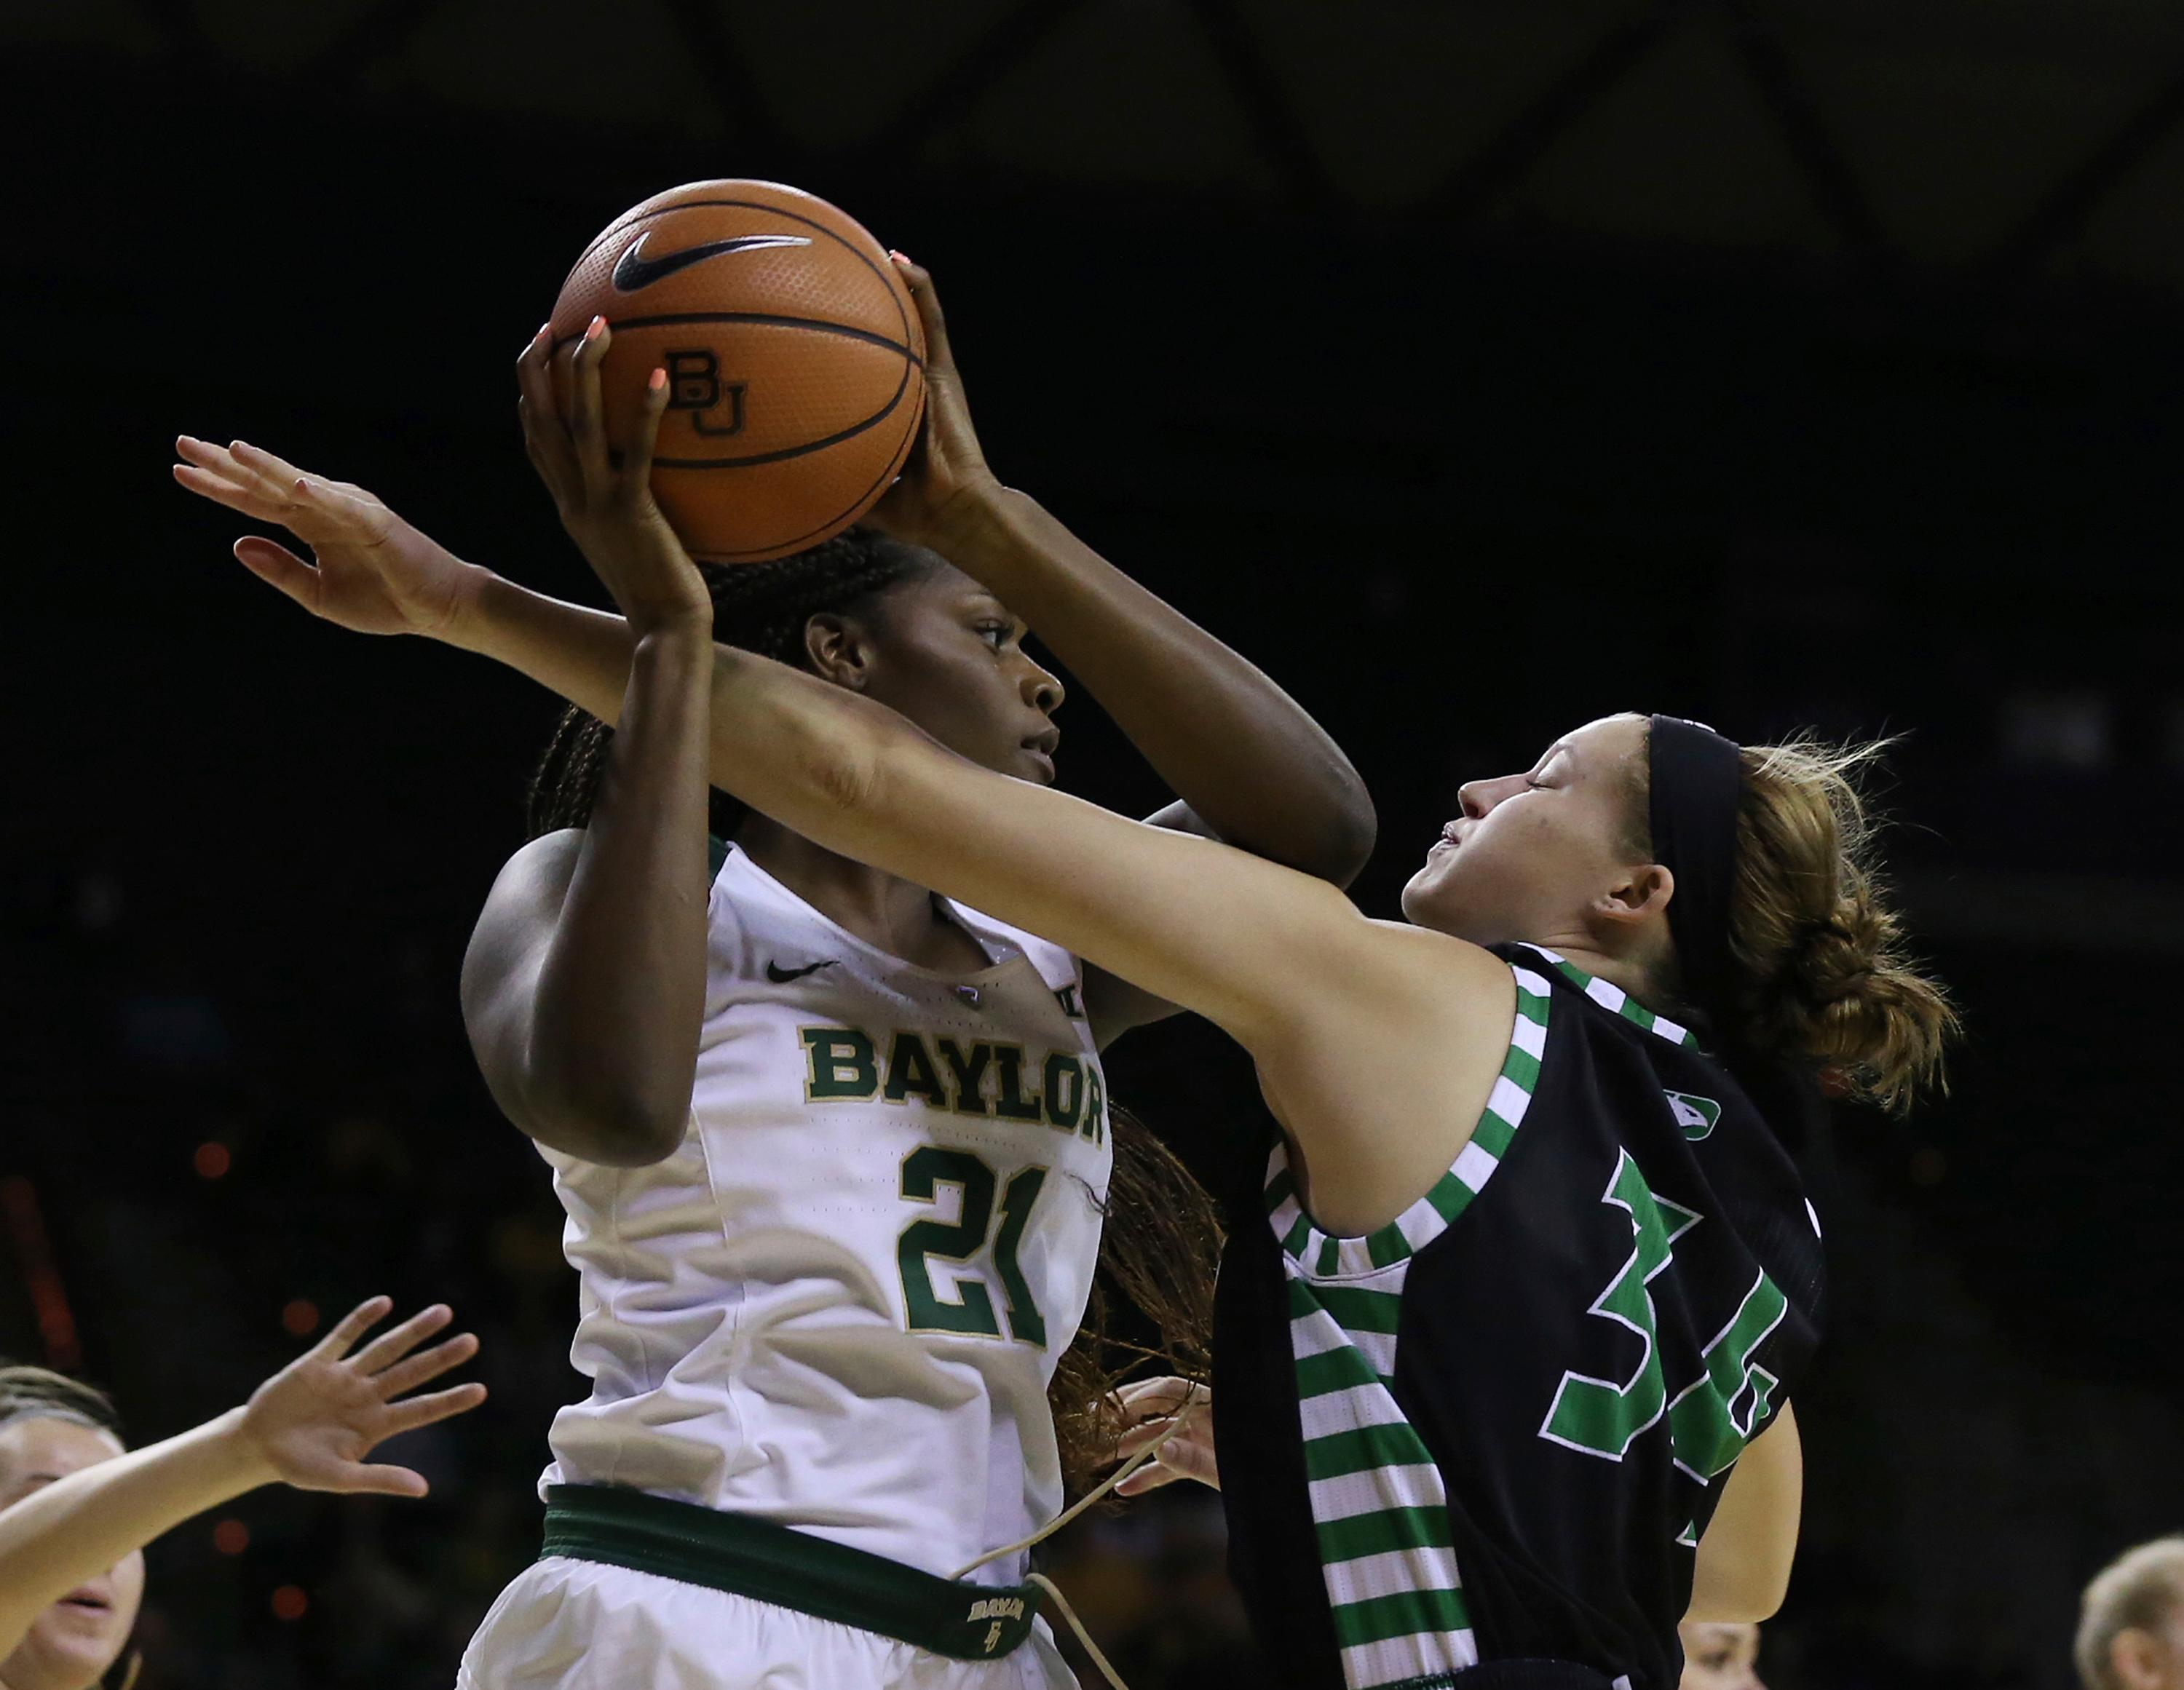 North Dakota's Lexi Klabo, right, reaches for the ball held by Baylor center Kalani Brown during the second half of an NCAA college basketball game, Tuesday, Dec. 5, 2017, in Waco, Texas. (Rod Aydelotte/Waco Tribune Herald via AP)